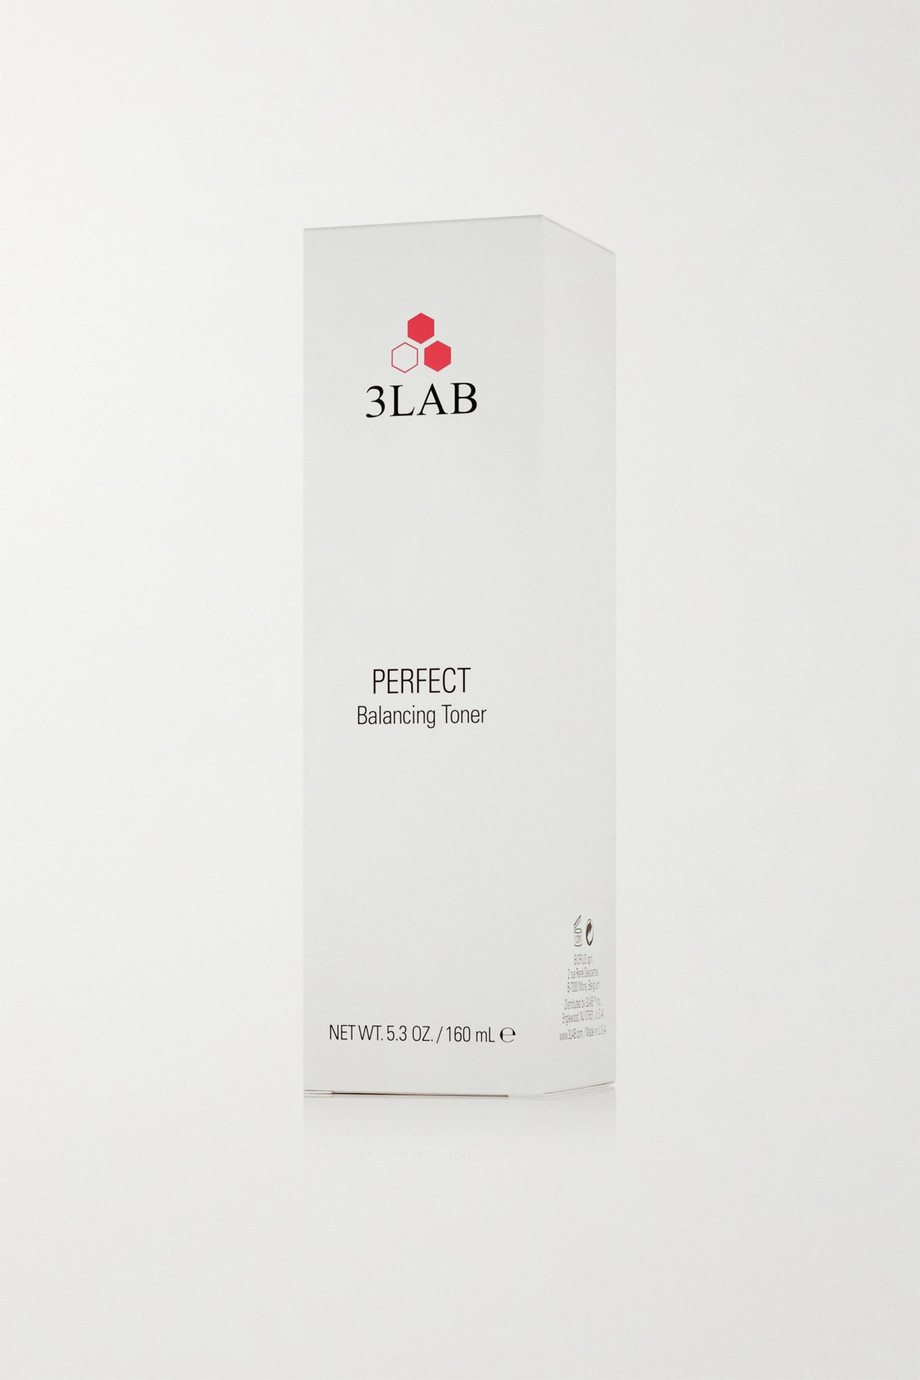 3LAB Perfect Balancing Toner, 160ml